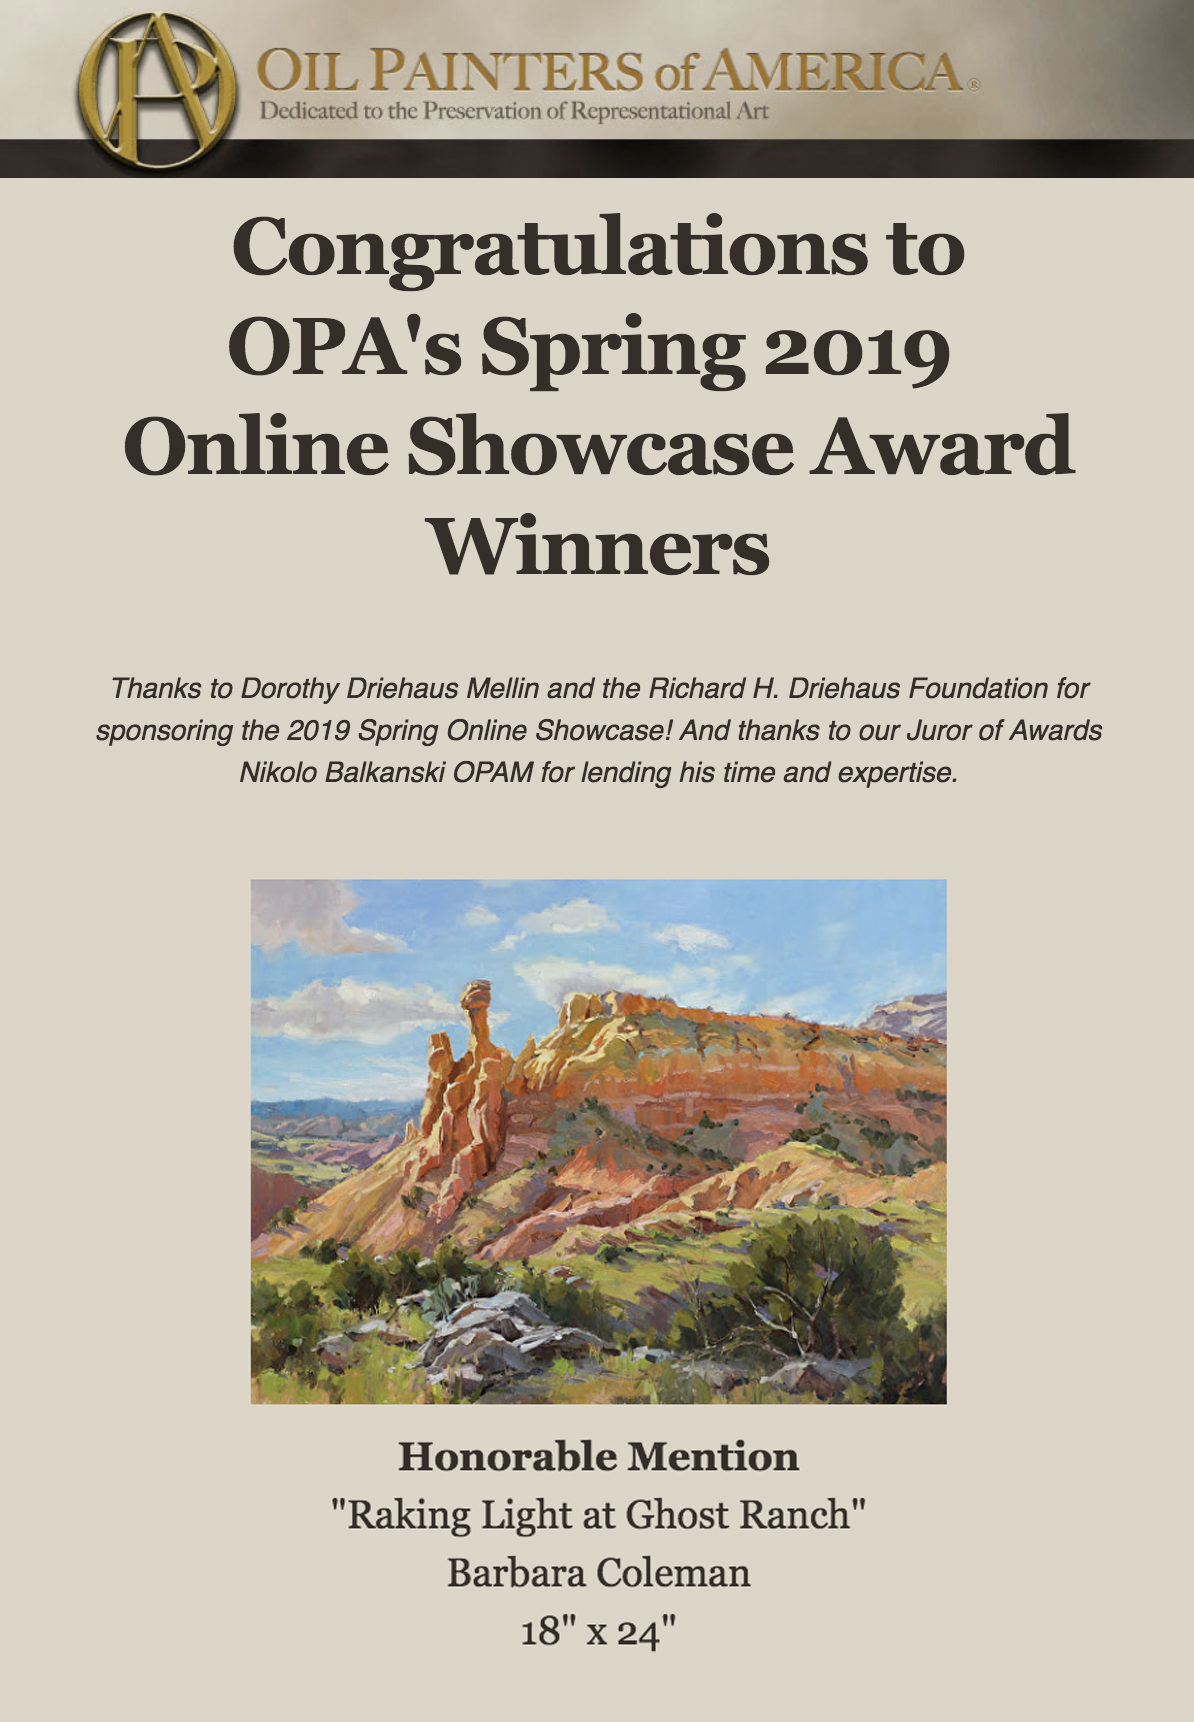 "I am pleased to announce ""Raking Light at Ghost Ranch"" awarded honorable mention in OPA's Spring 2019 Showcase - See the work and the other talented artist's work here:http://opa.faso.com/winners/223"